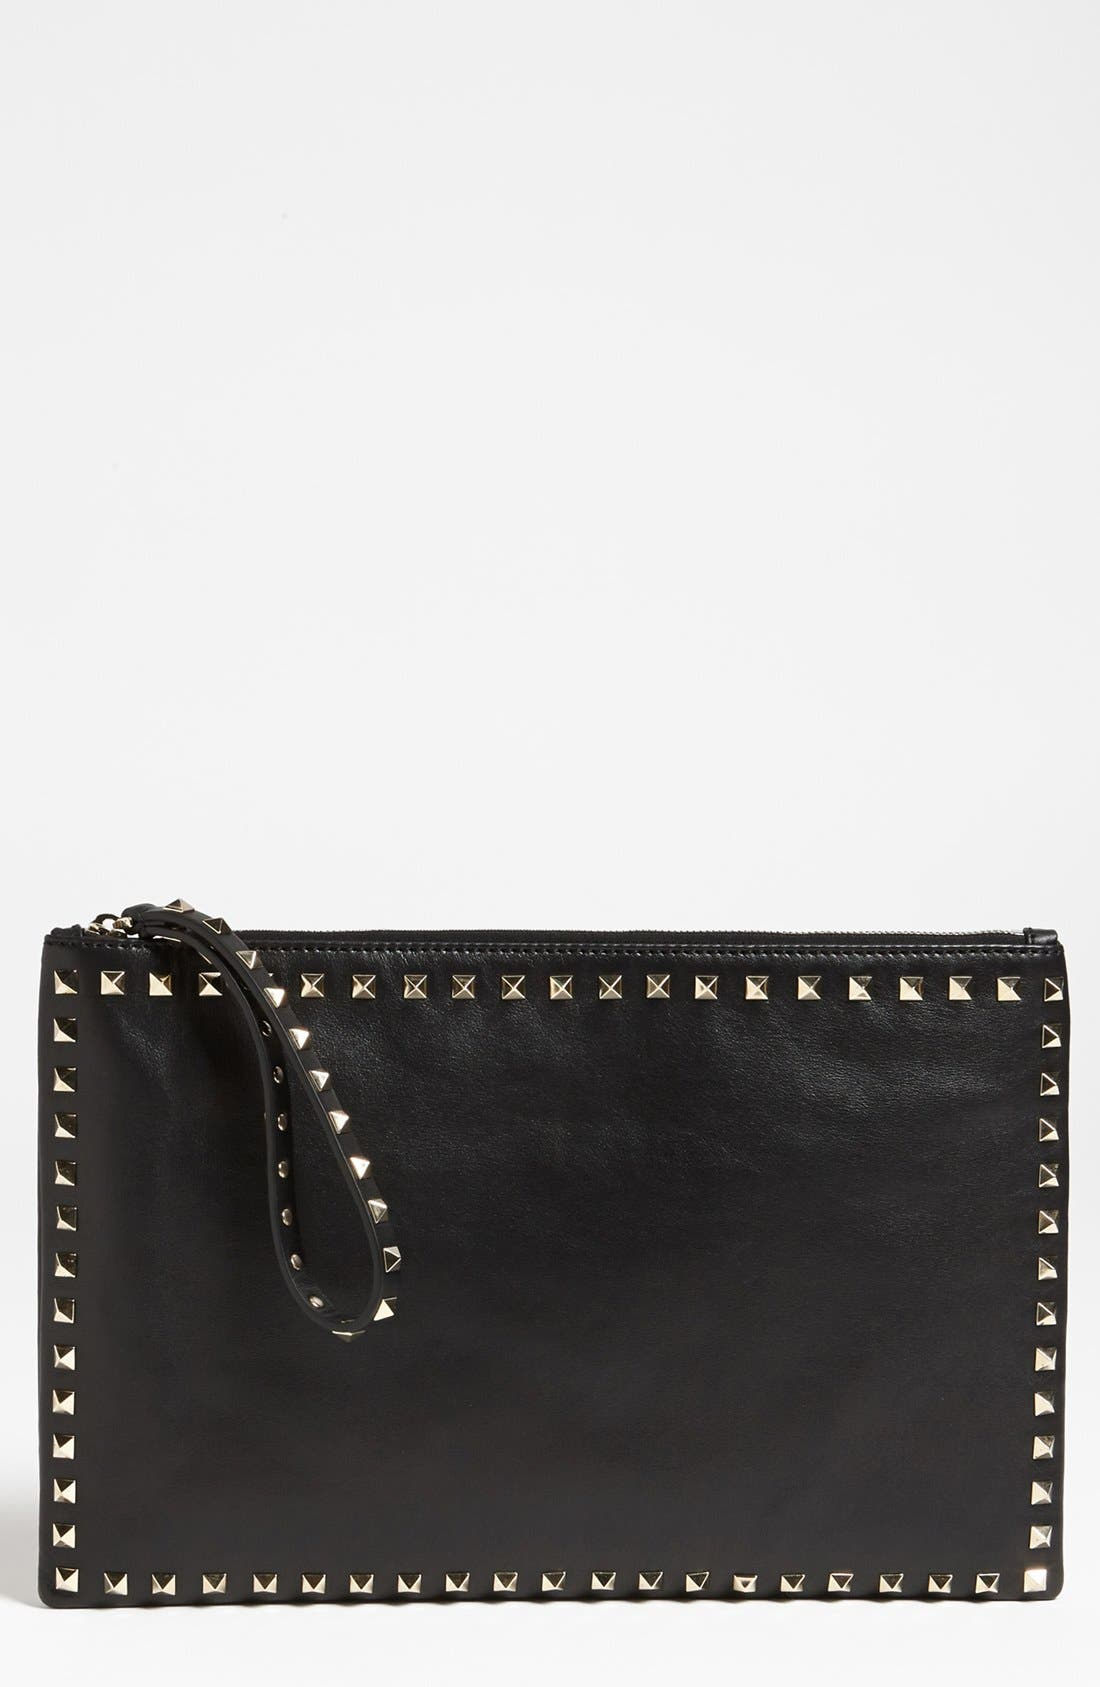 Main Image - Valentino 'Rockstud - Flat' Leather Clutch